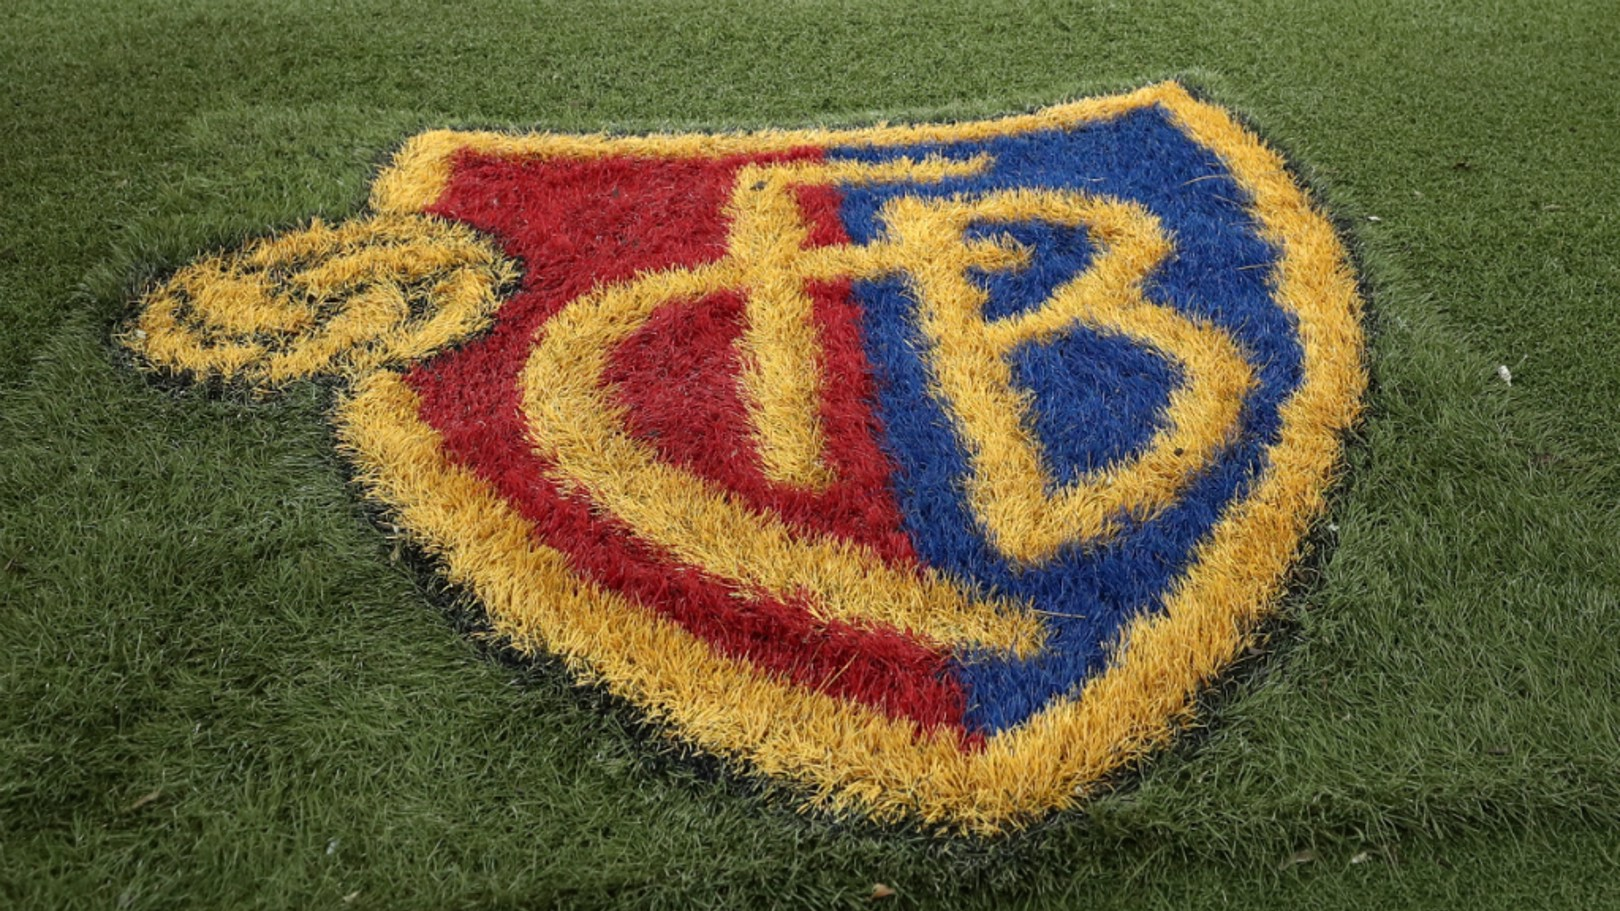 FC BASEL: Taking a look at our Swiss opponents...